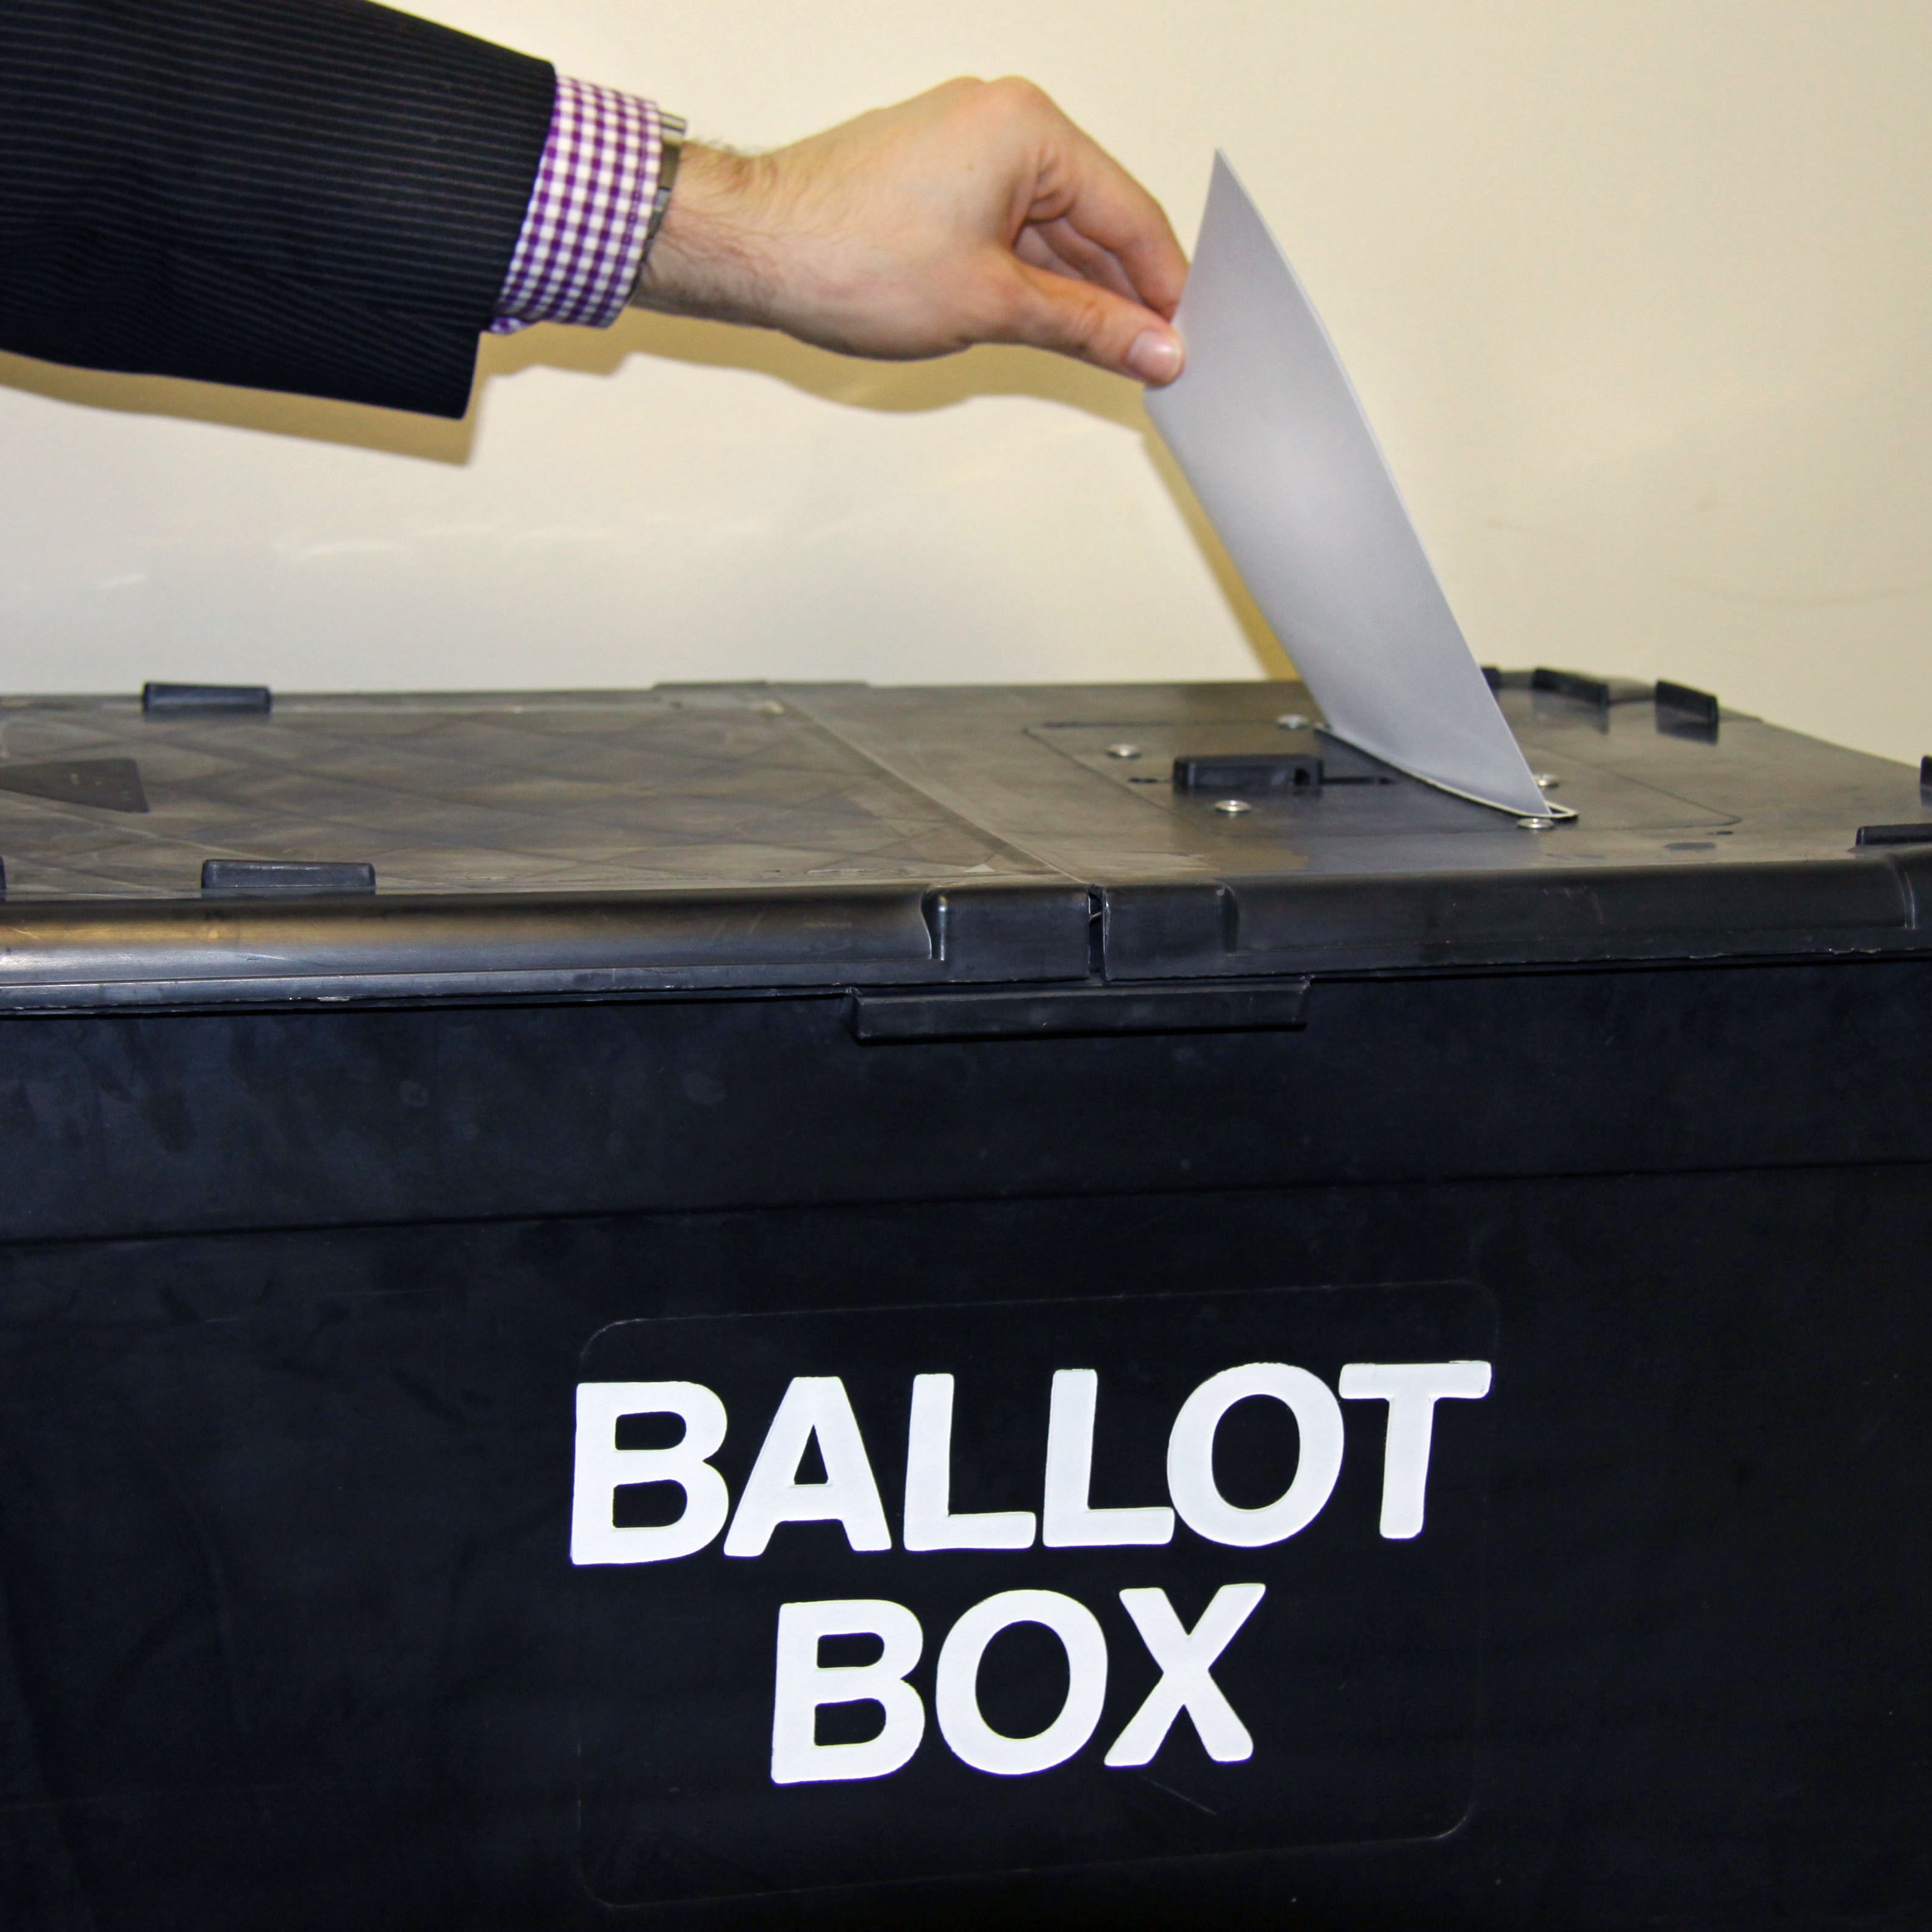 Candidates announced for Holmebrook by-election